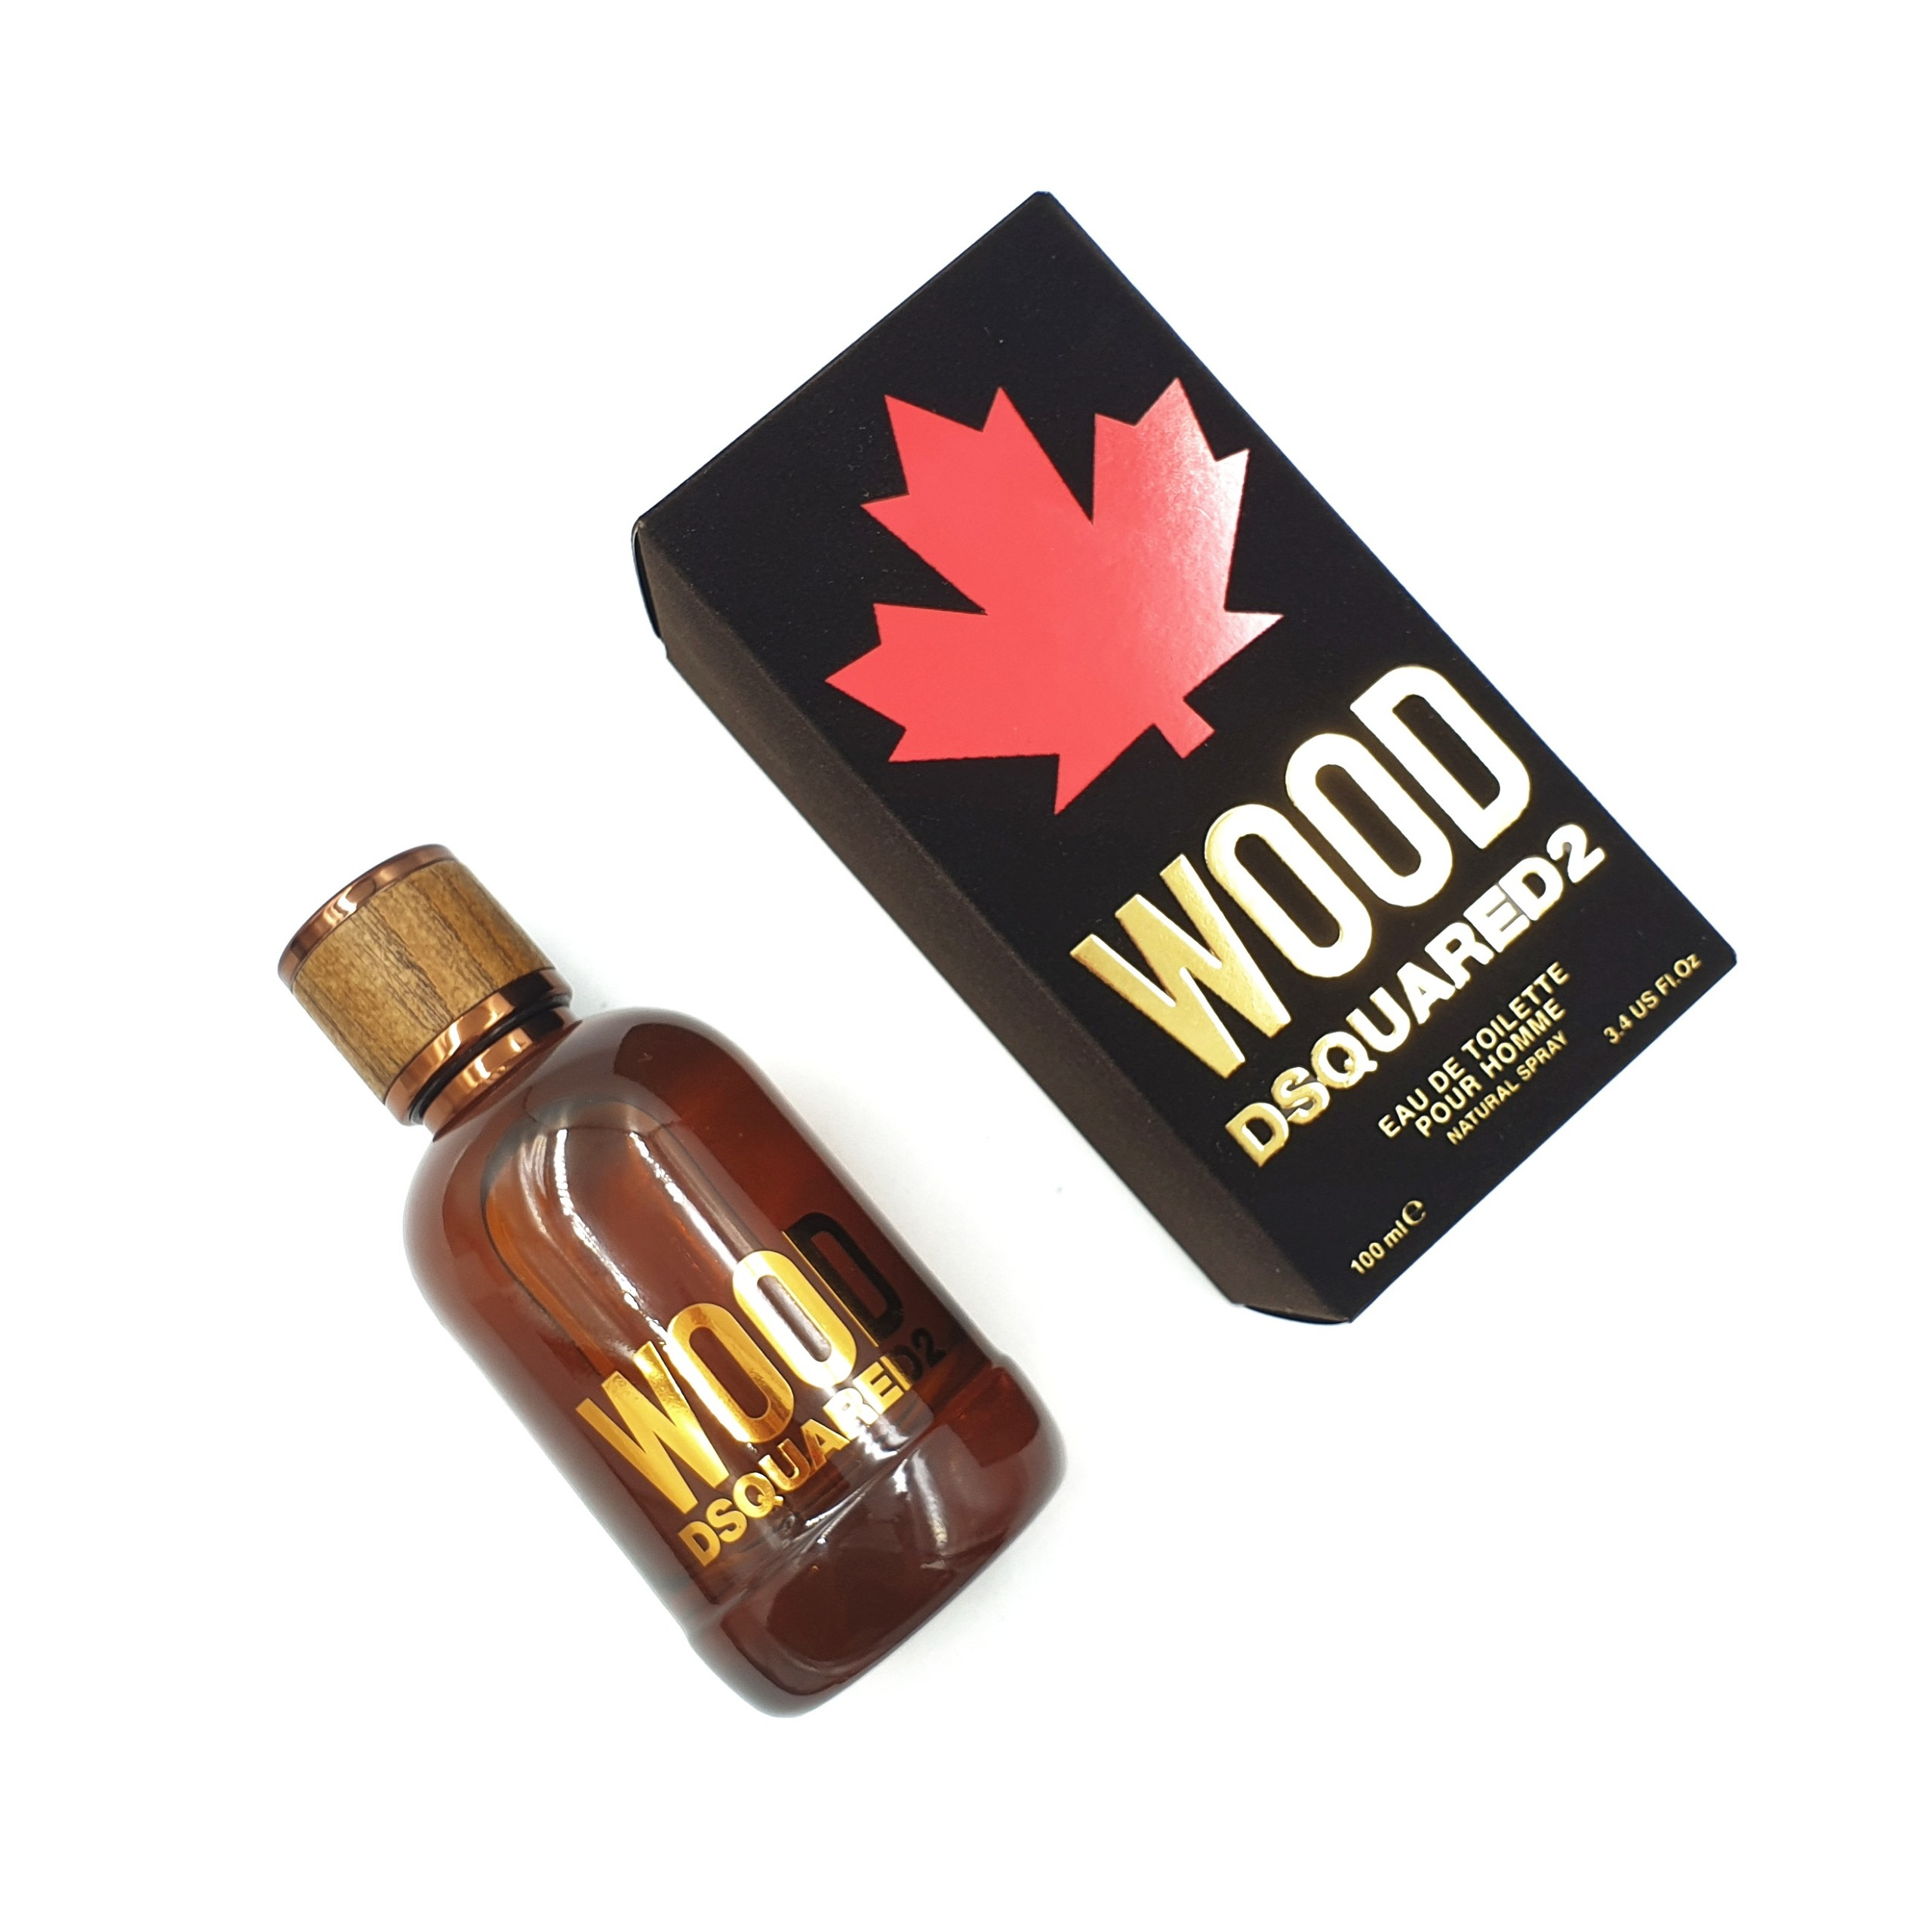 Dsquared2 Wood Pour Homme EDT 100ml